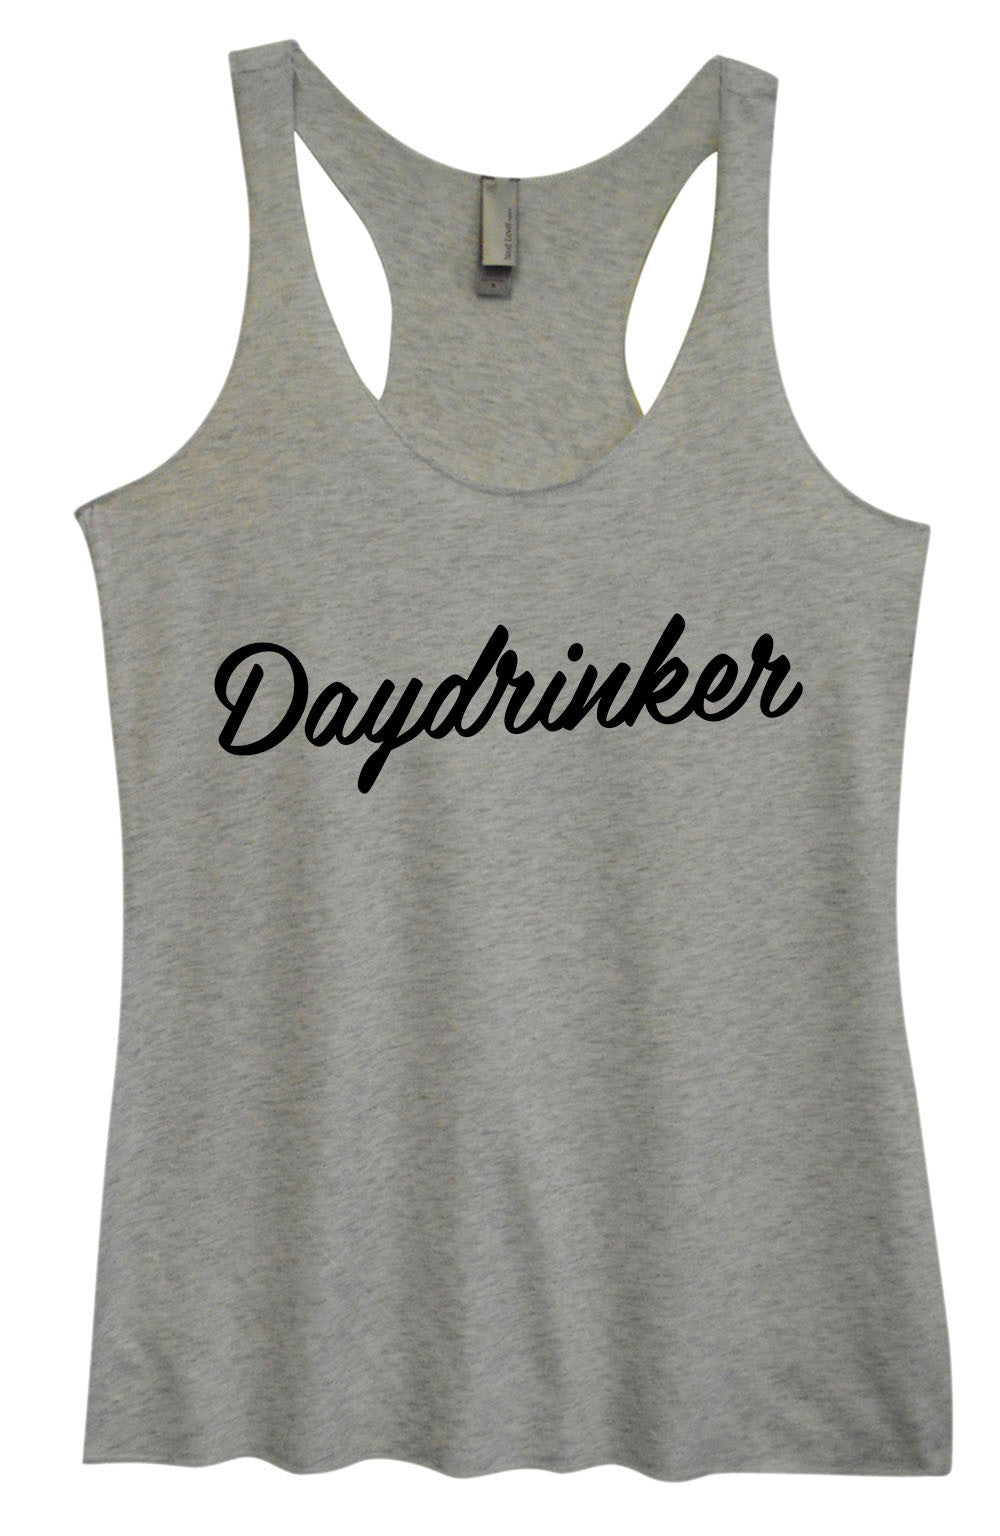 Womens Fashion Triblend Tank Top - Daydrinker - Tri-1569 - Funny Shirts Tank Tops Burnouts and Triblends  - 1